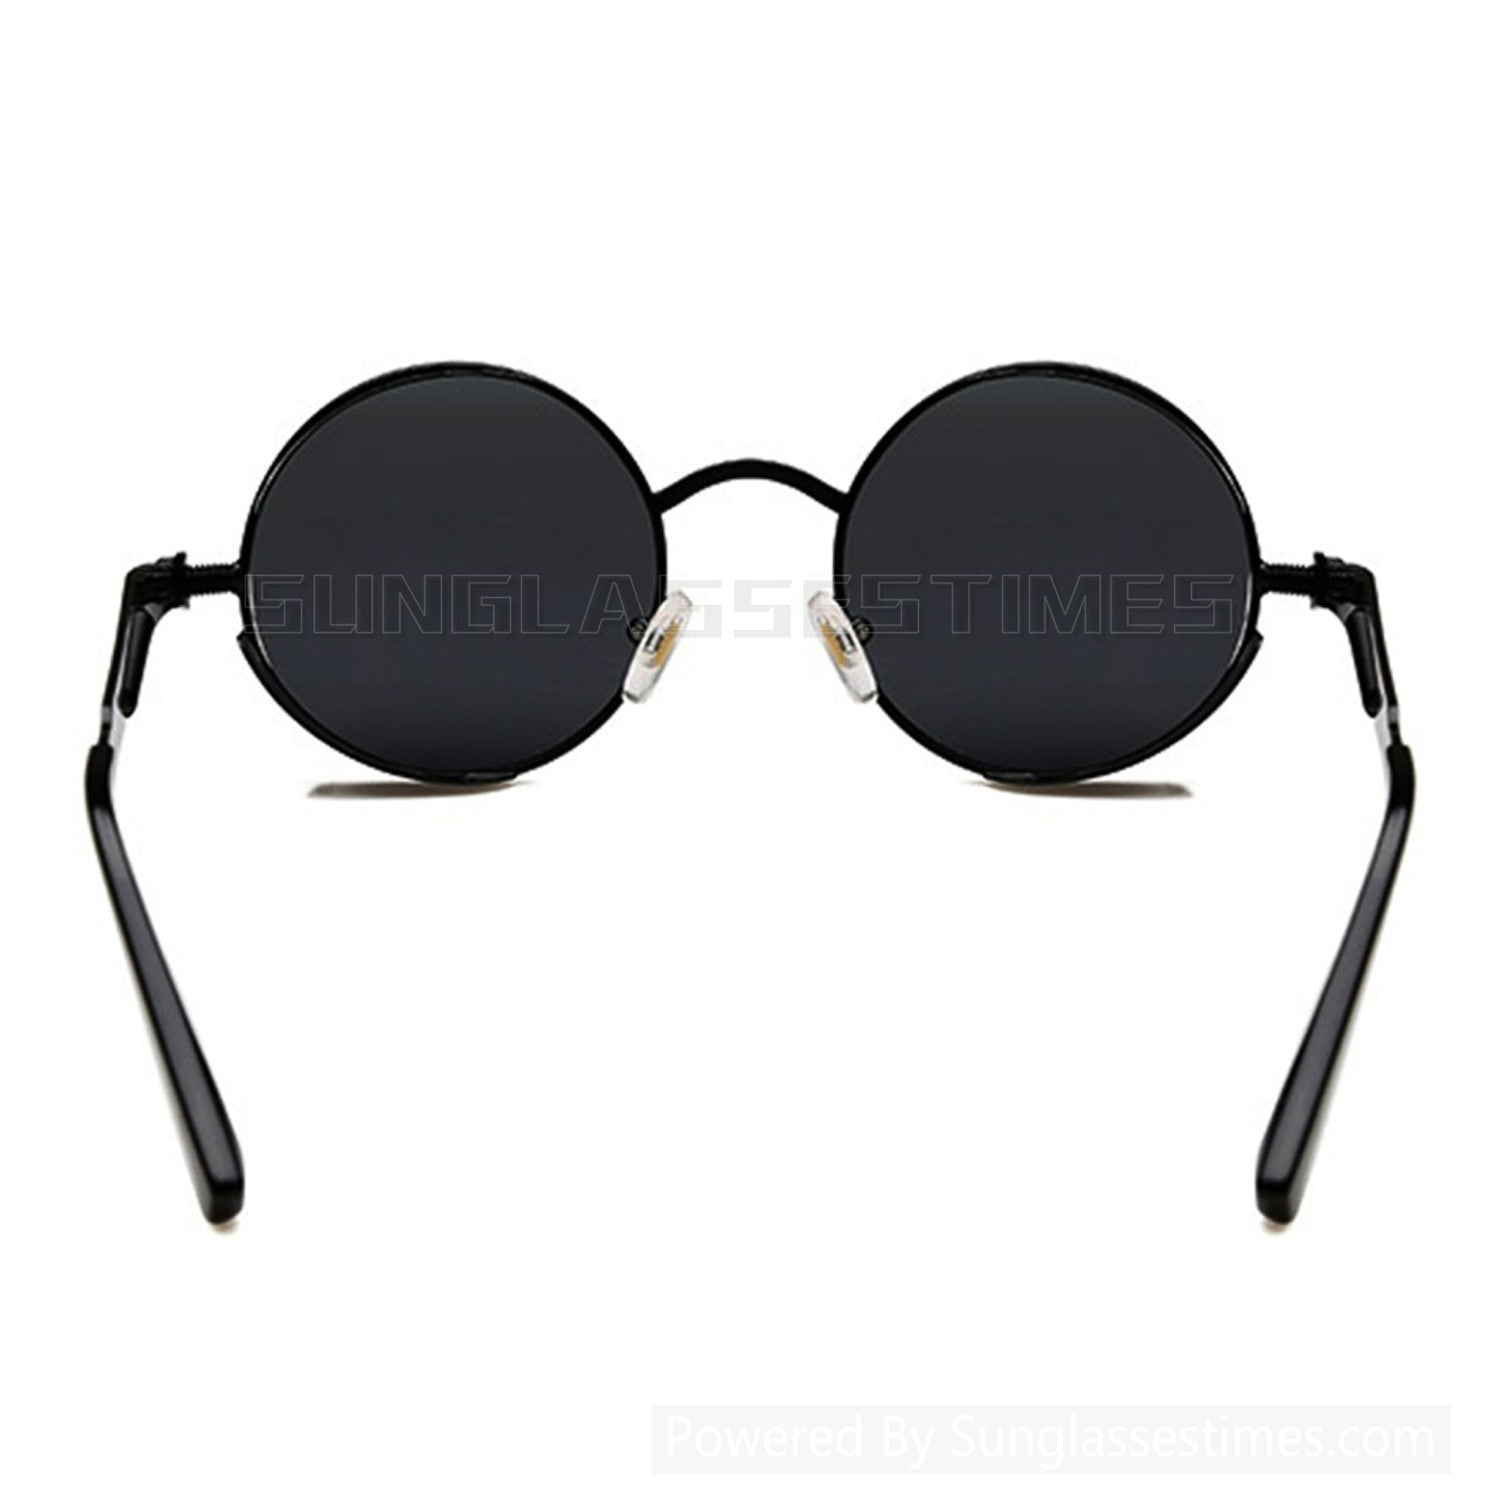 Polarized Sunglasses A372